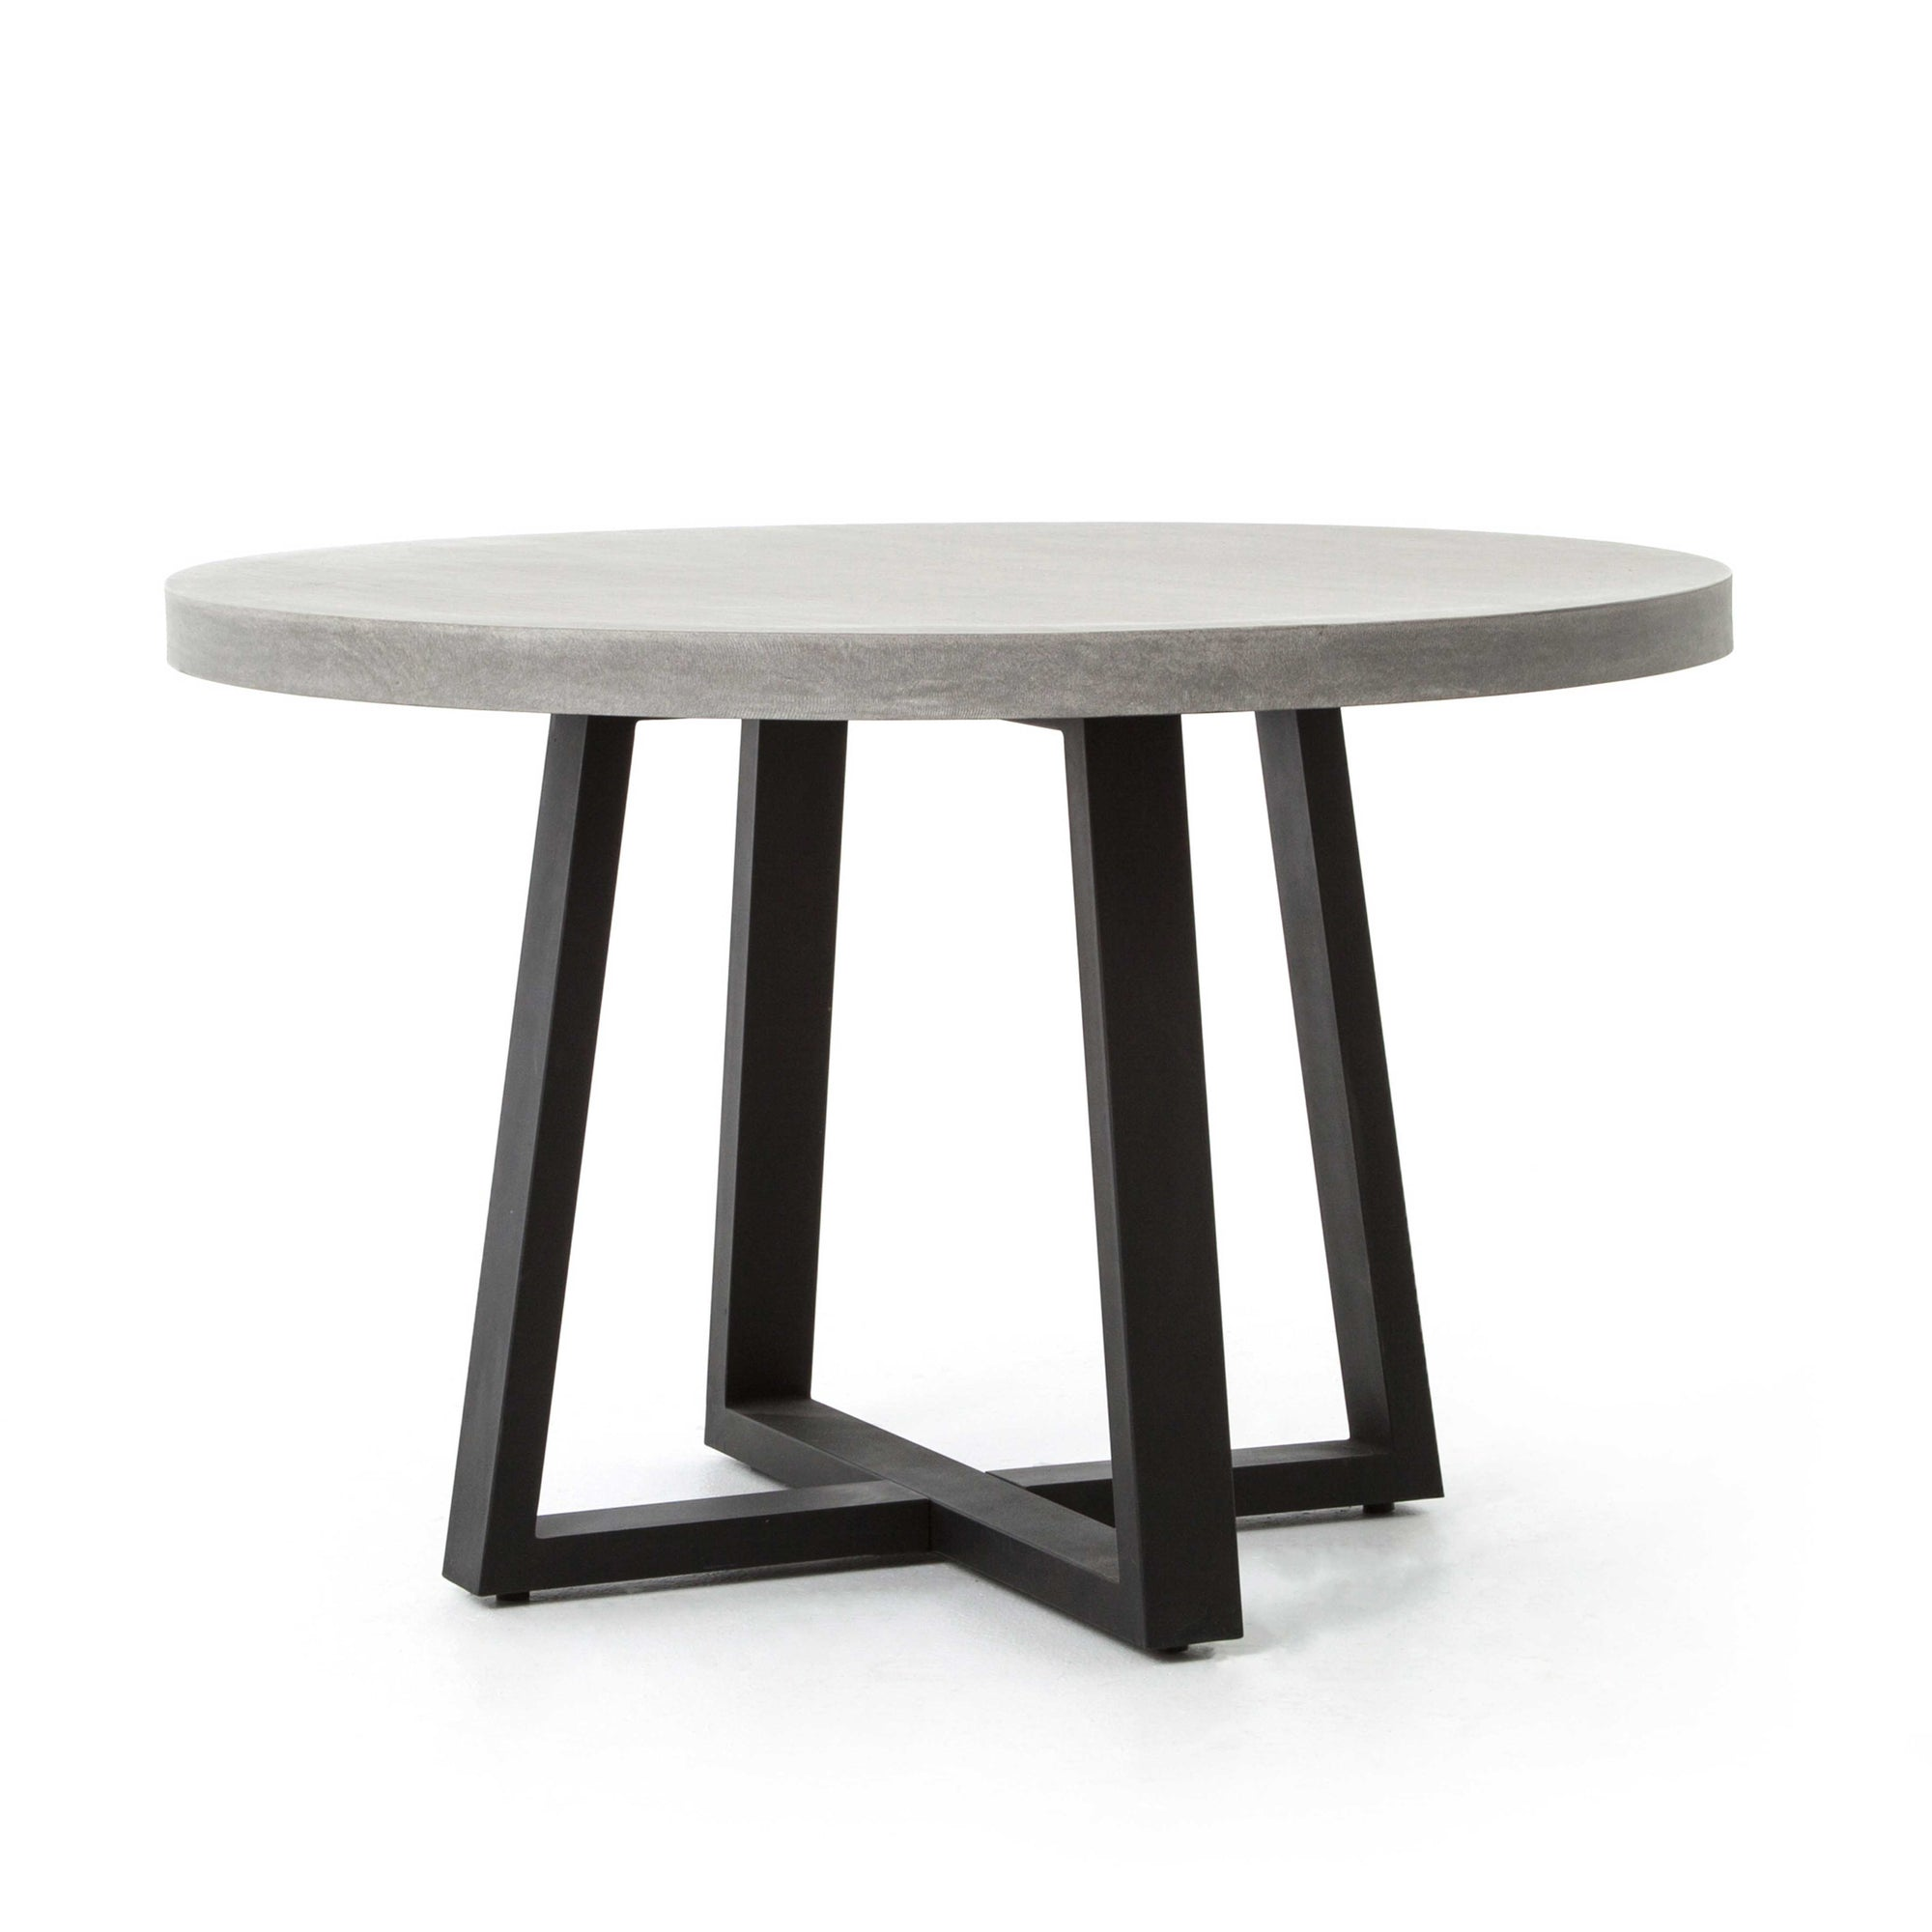 Cyrus Round Dining Table